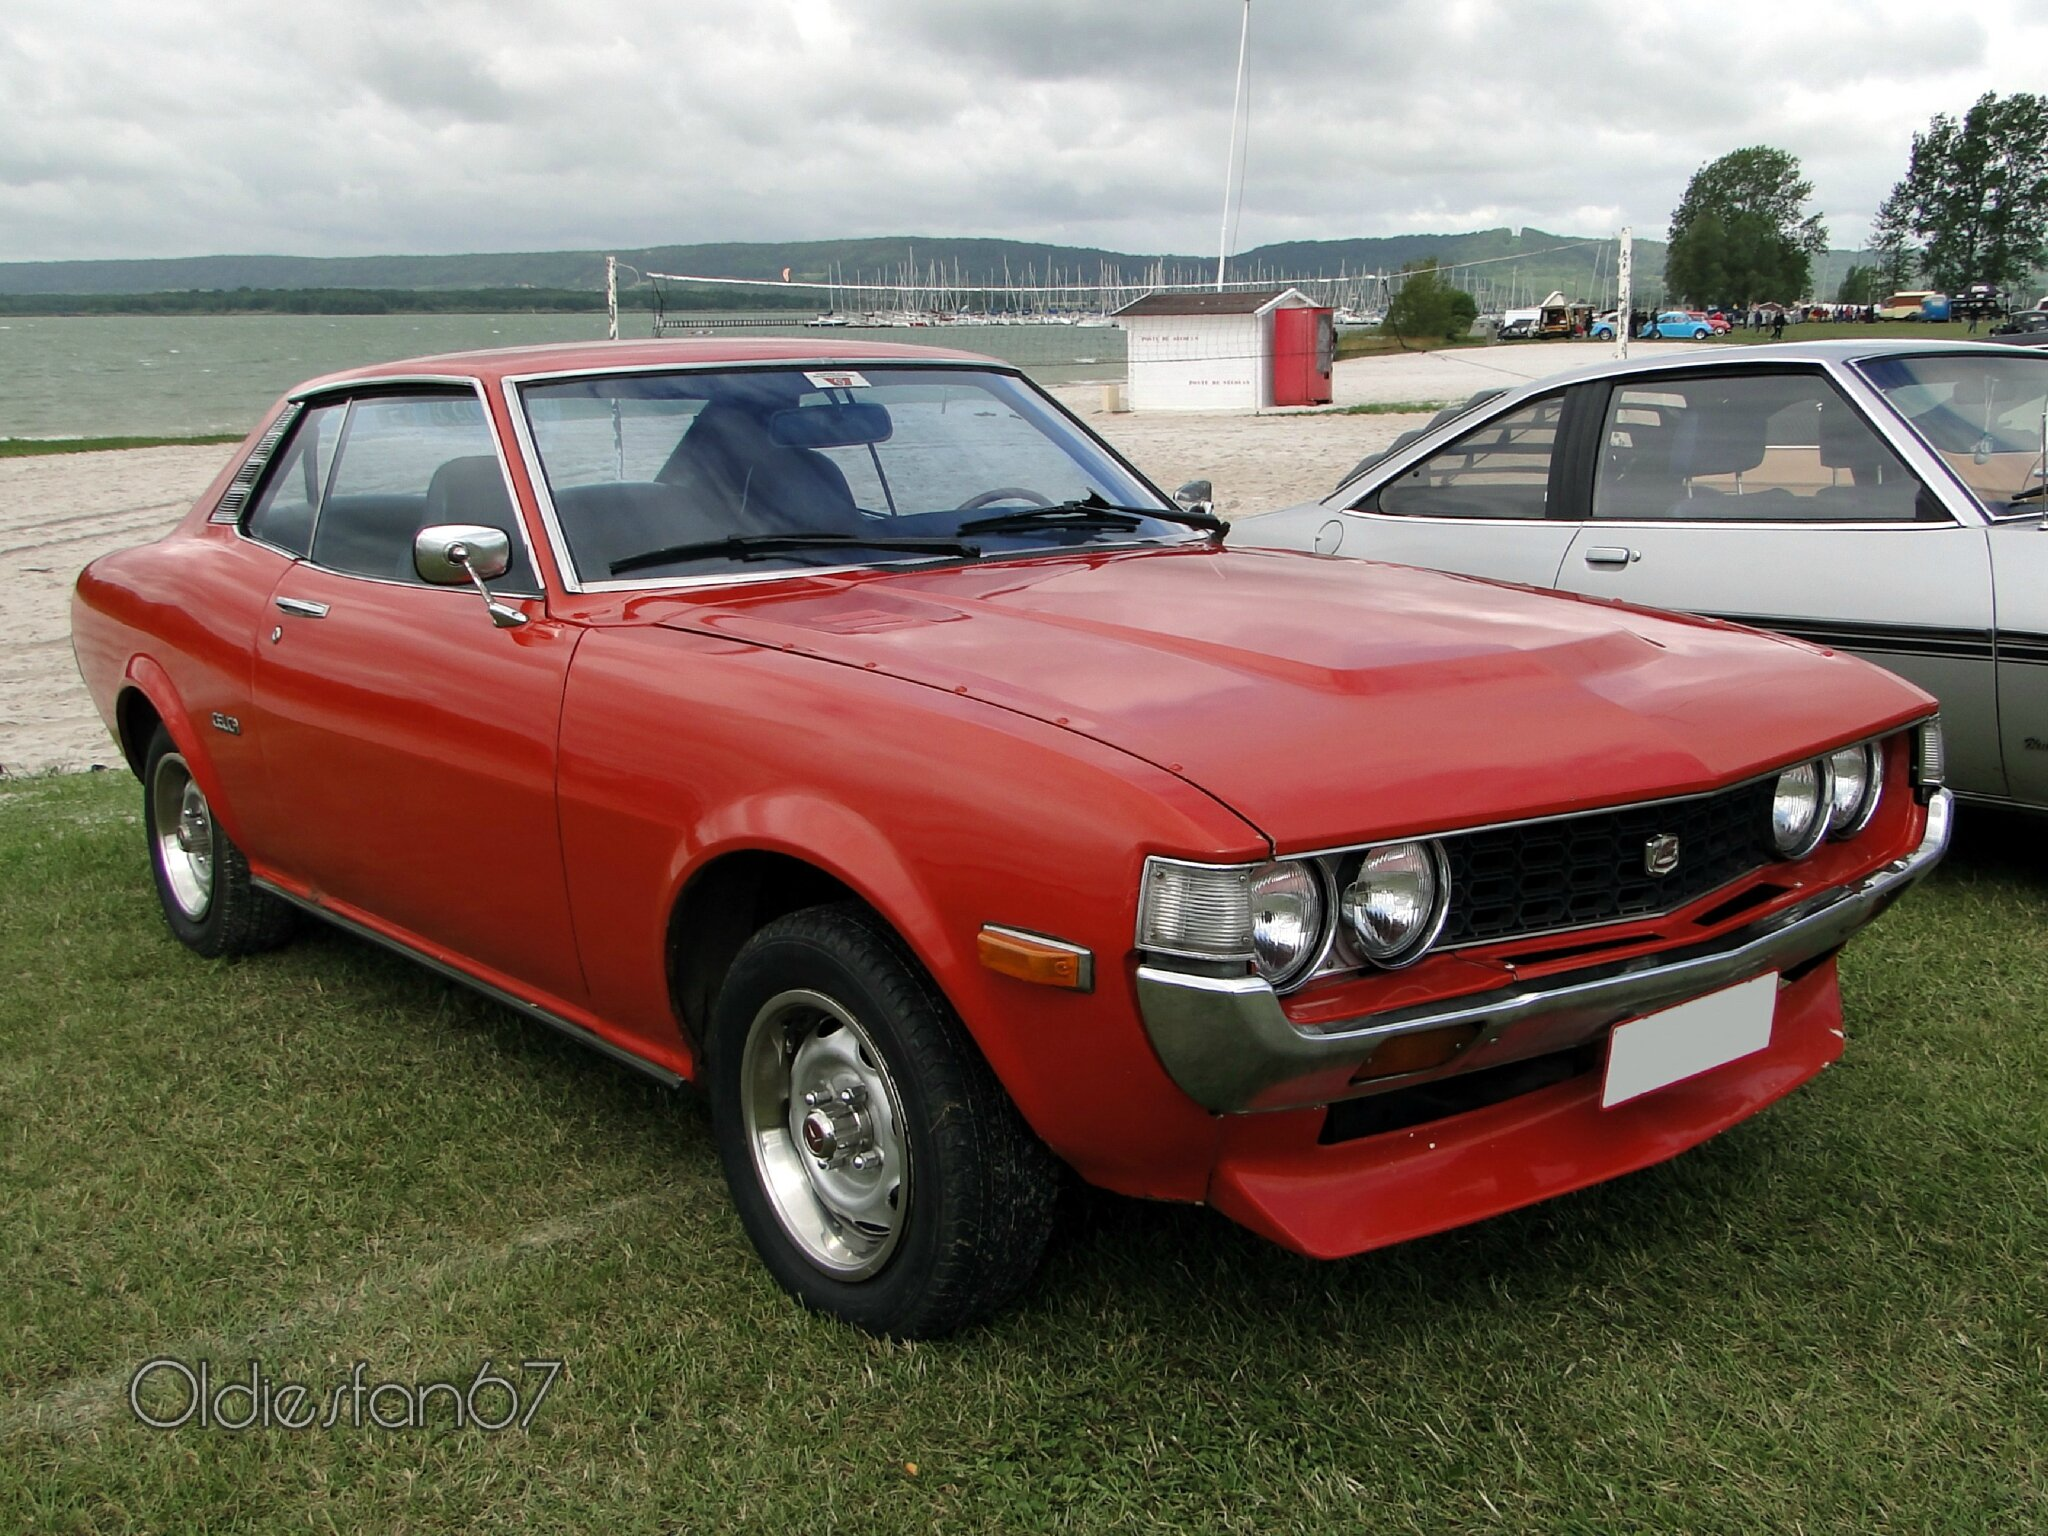 Toyota Celica 1600 St 5 Speeds 1971 1977 Oldiesfan67 Quot Mon Blog Auto Quot